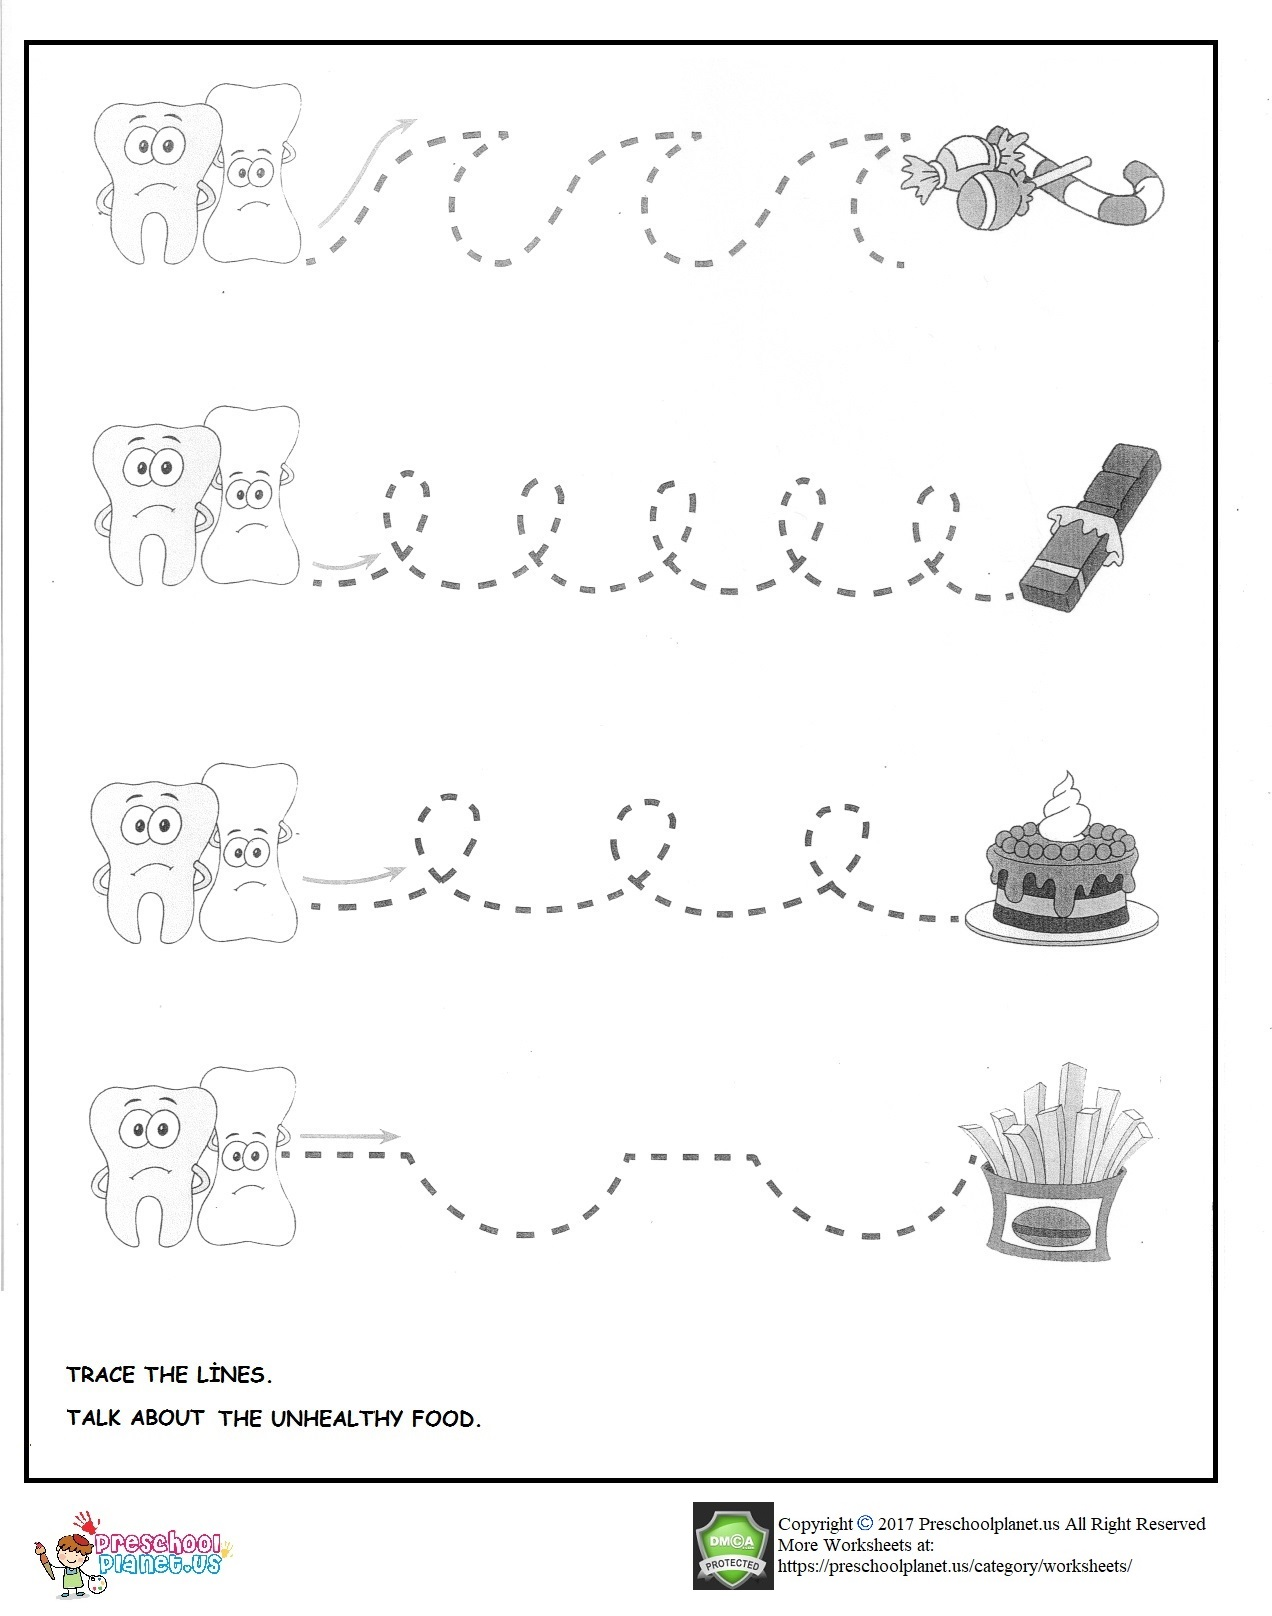 printable worksheets for personal hygiene | personal hygiene ...